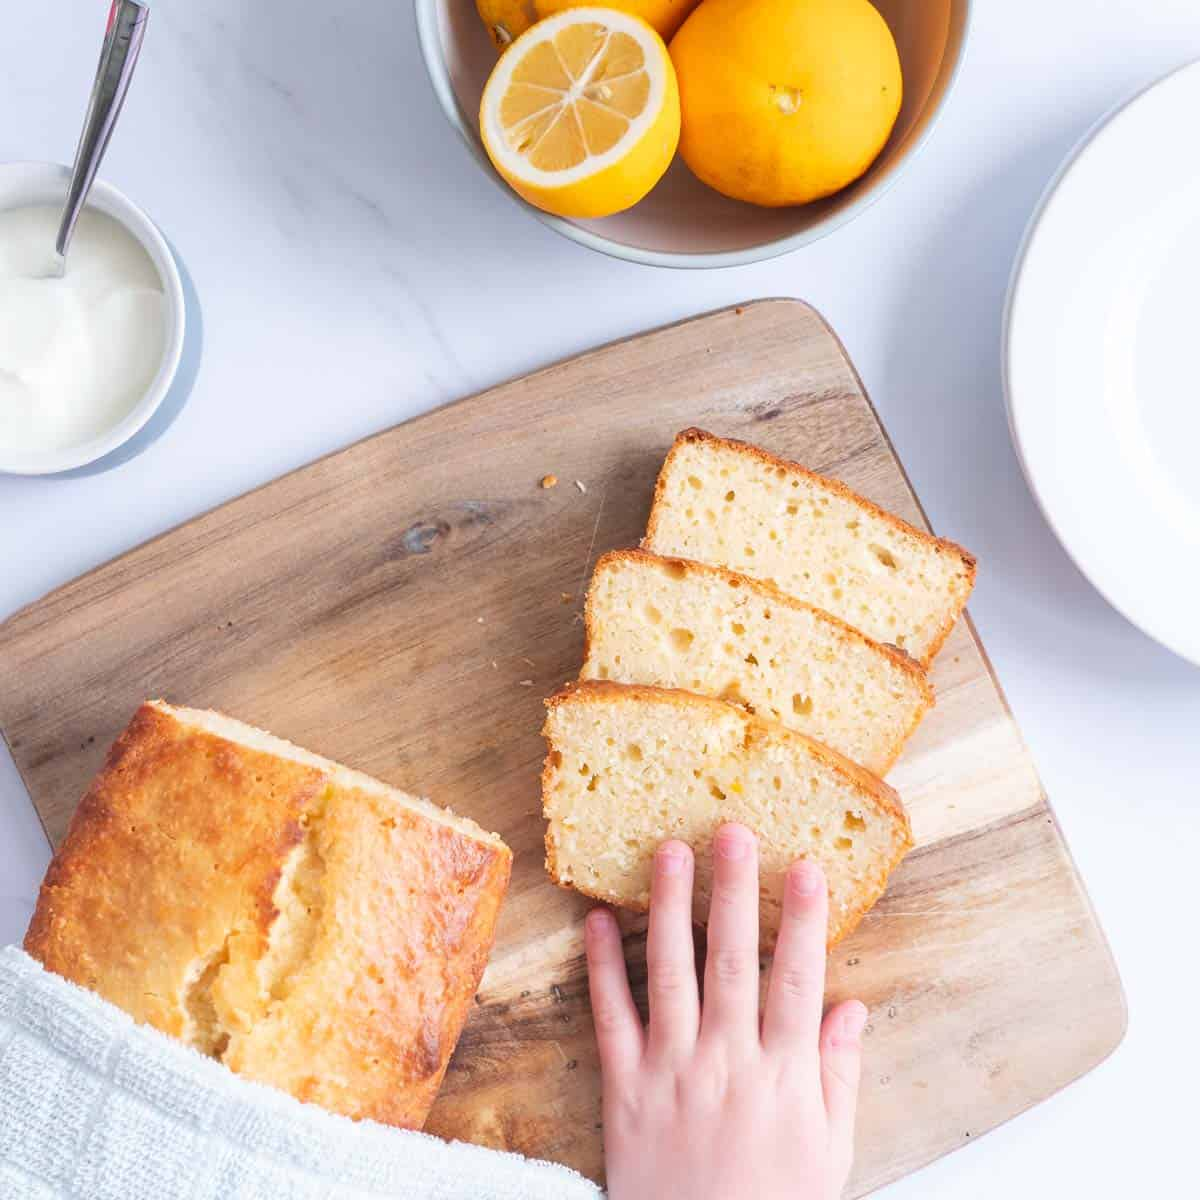 3 Slices of lemon loaf on a wooden chopping board with a child's hand reaching out for a piece